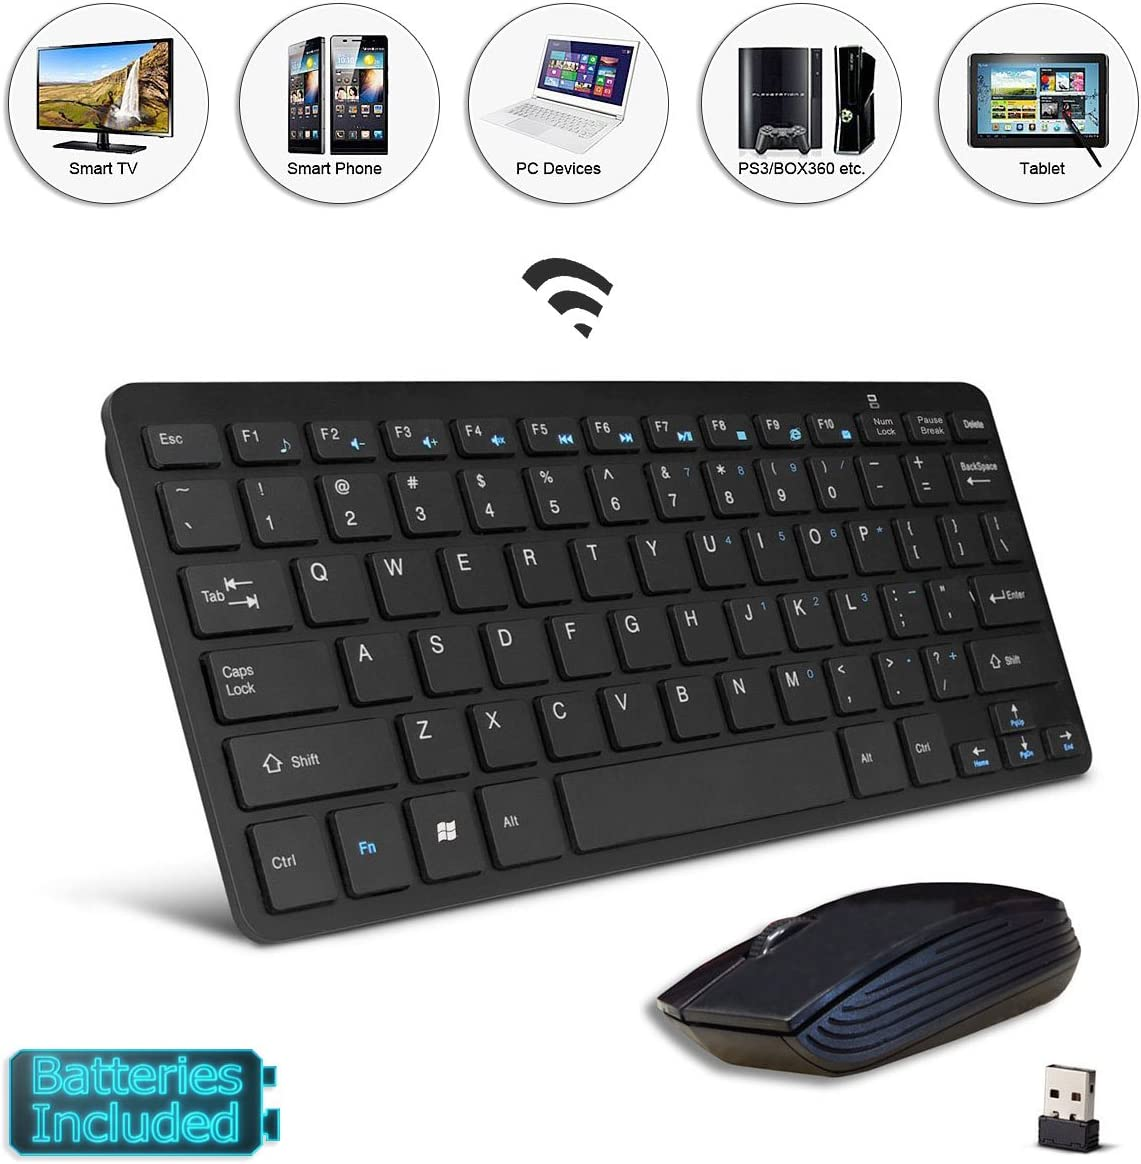 Black Wireless Mini Keyboard /& Mouse Easy Remote Control for Samsung LG 43UJ670V 43 Smart TV